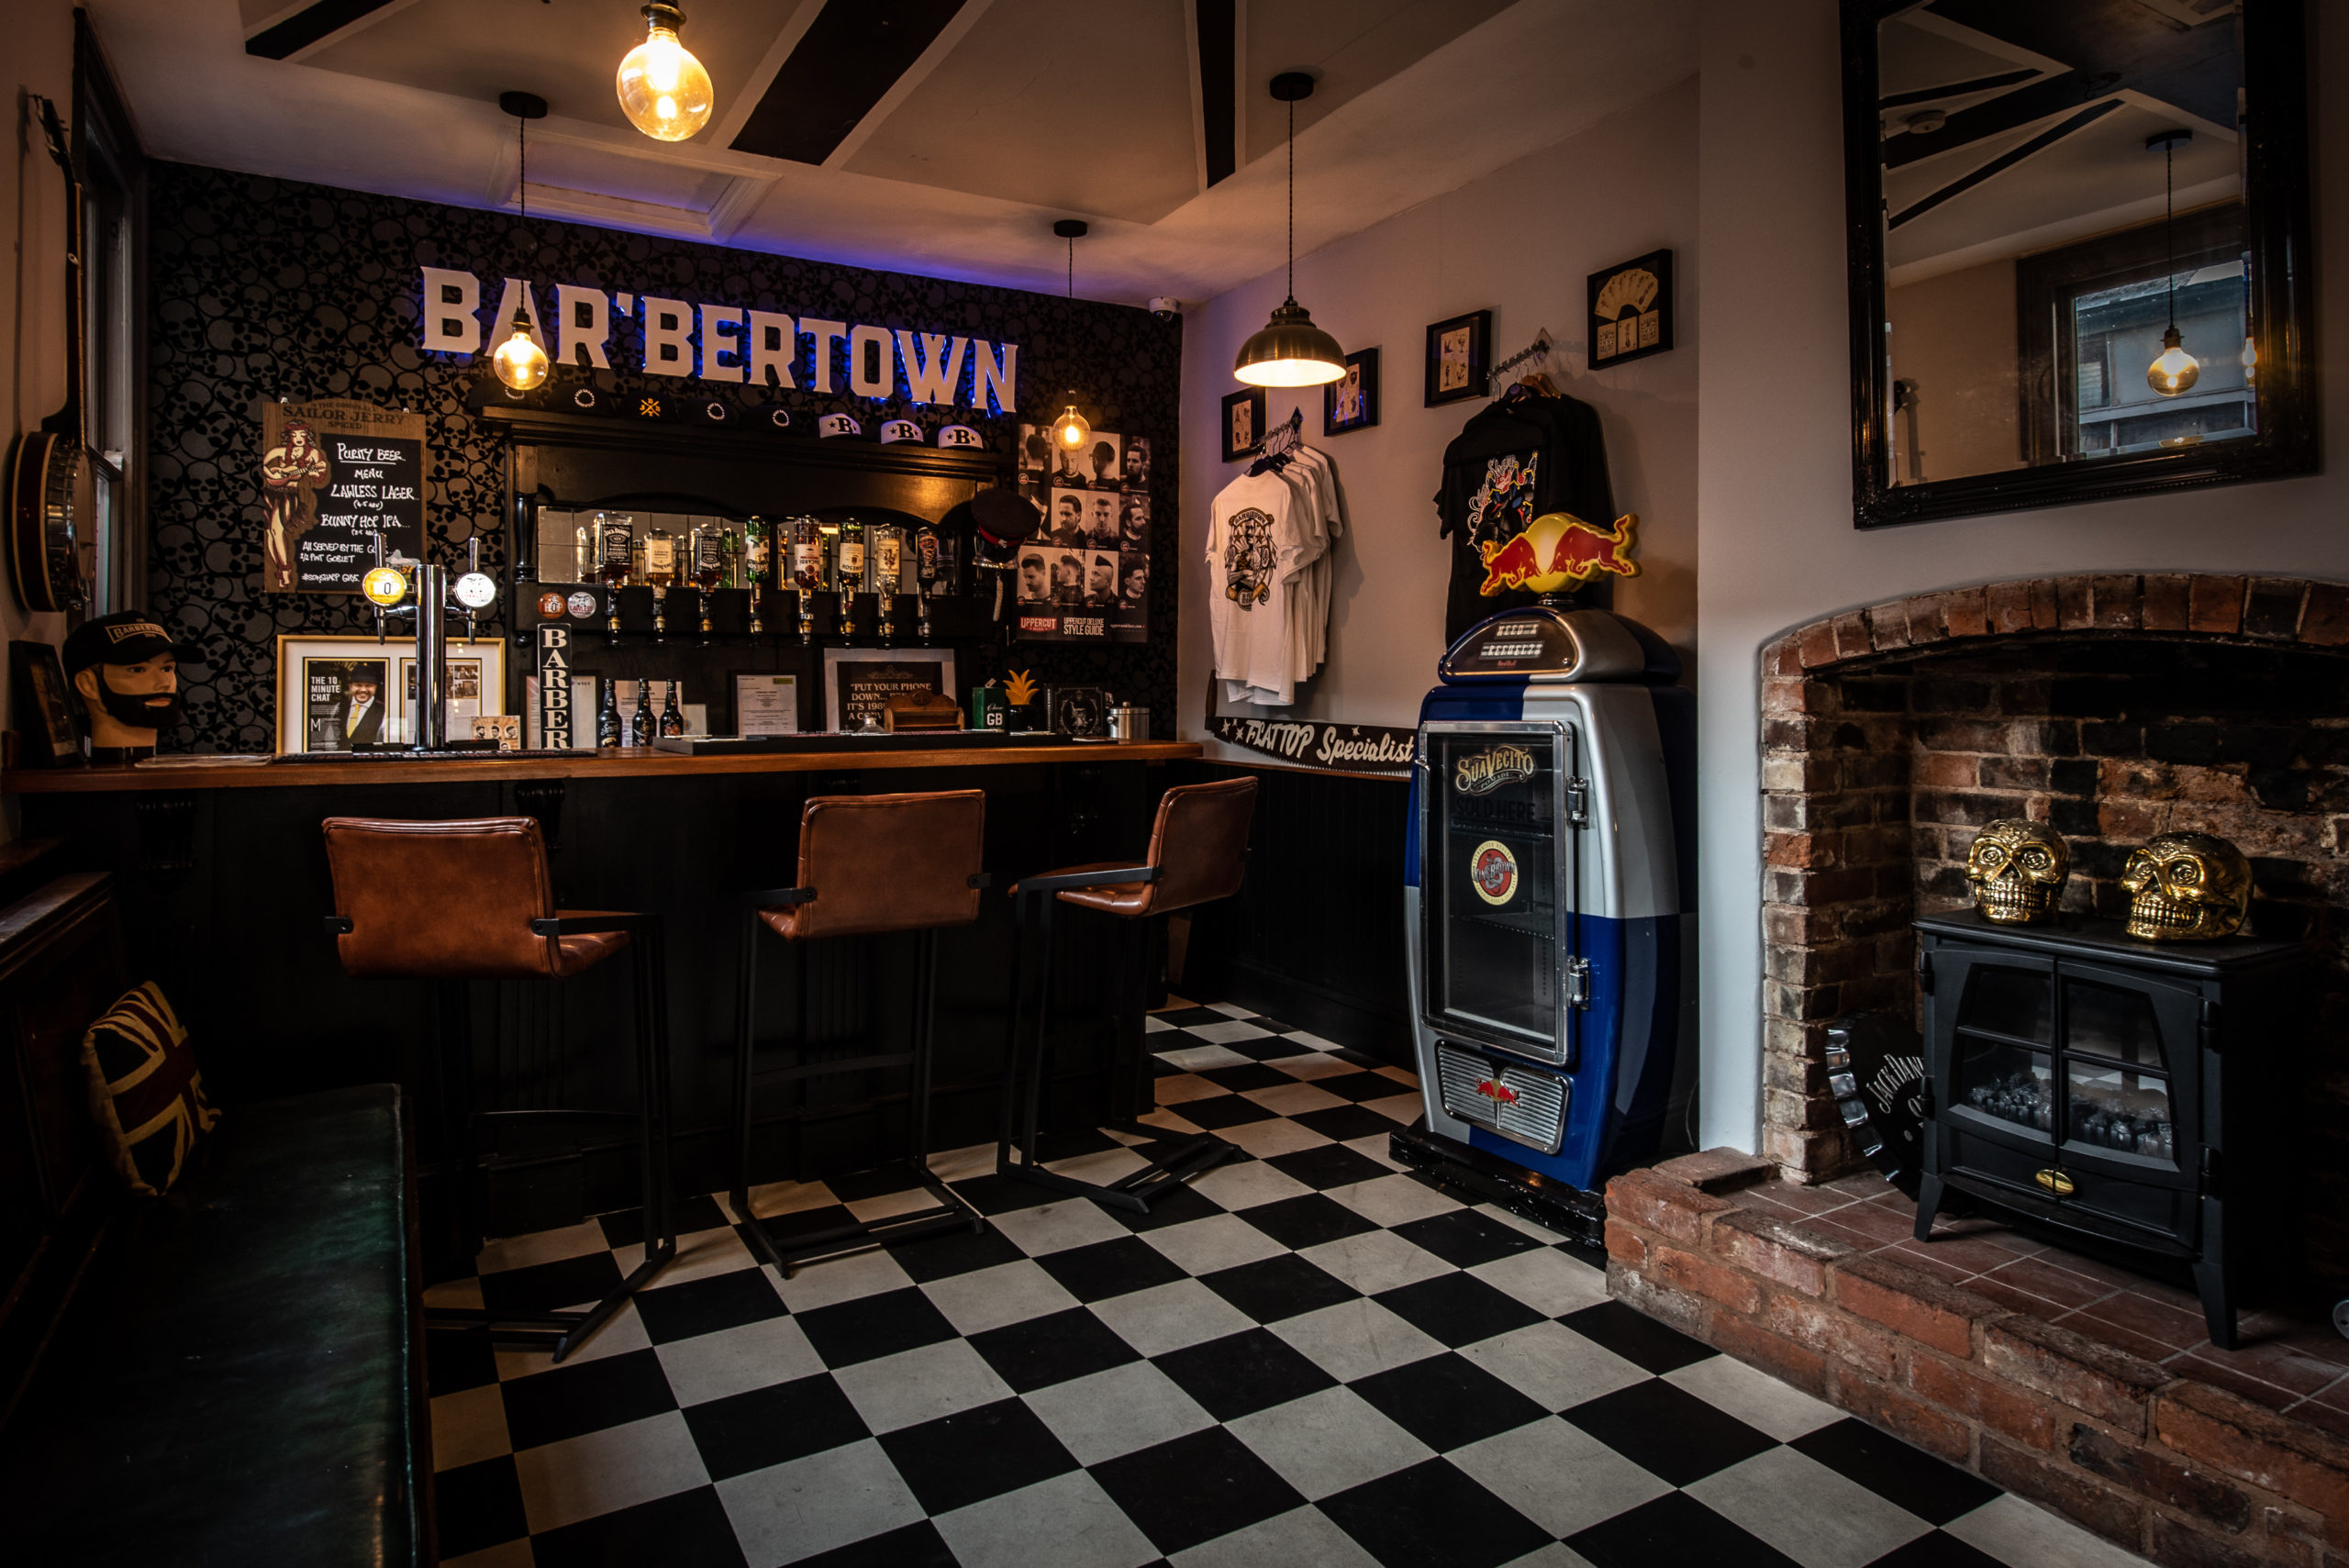 Meet Our Client, Barbertown